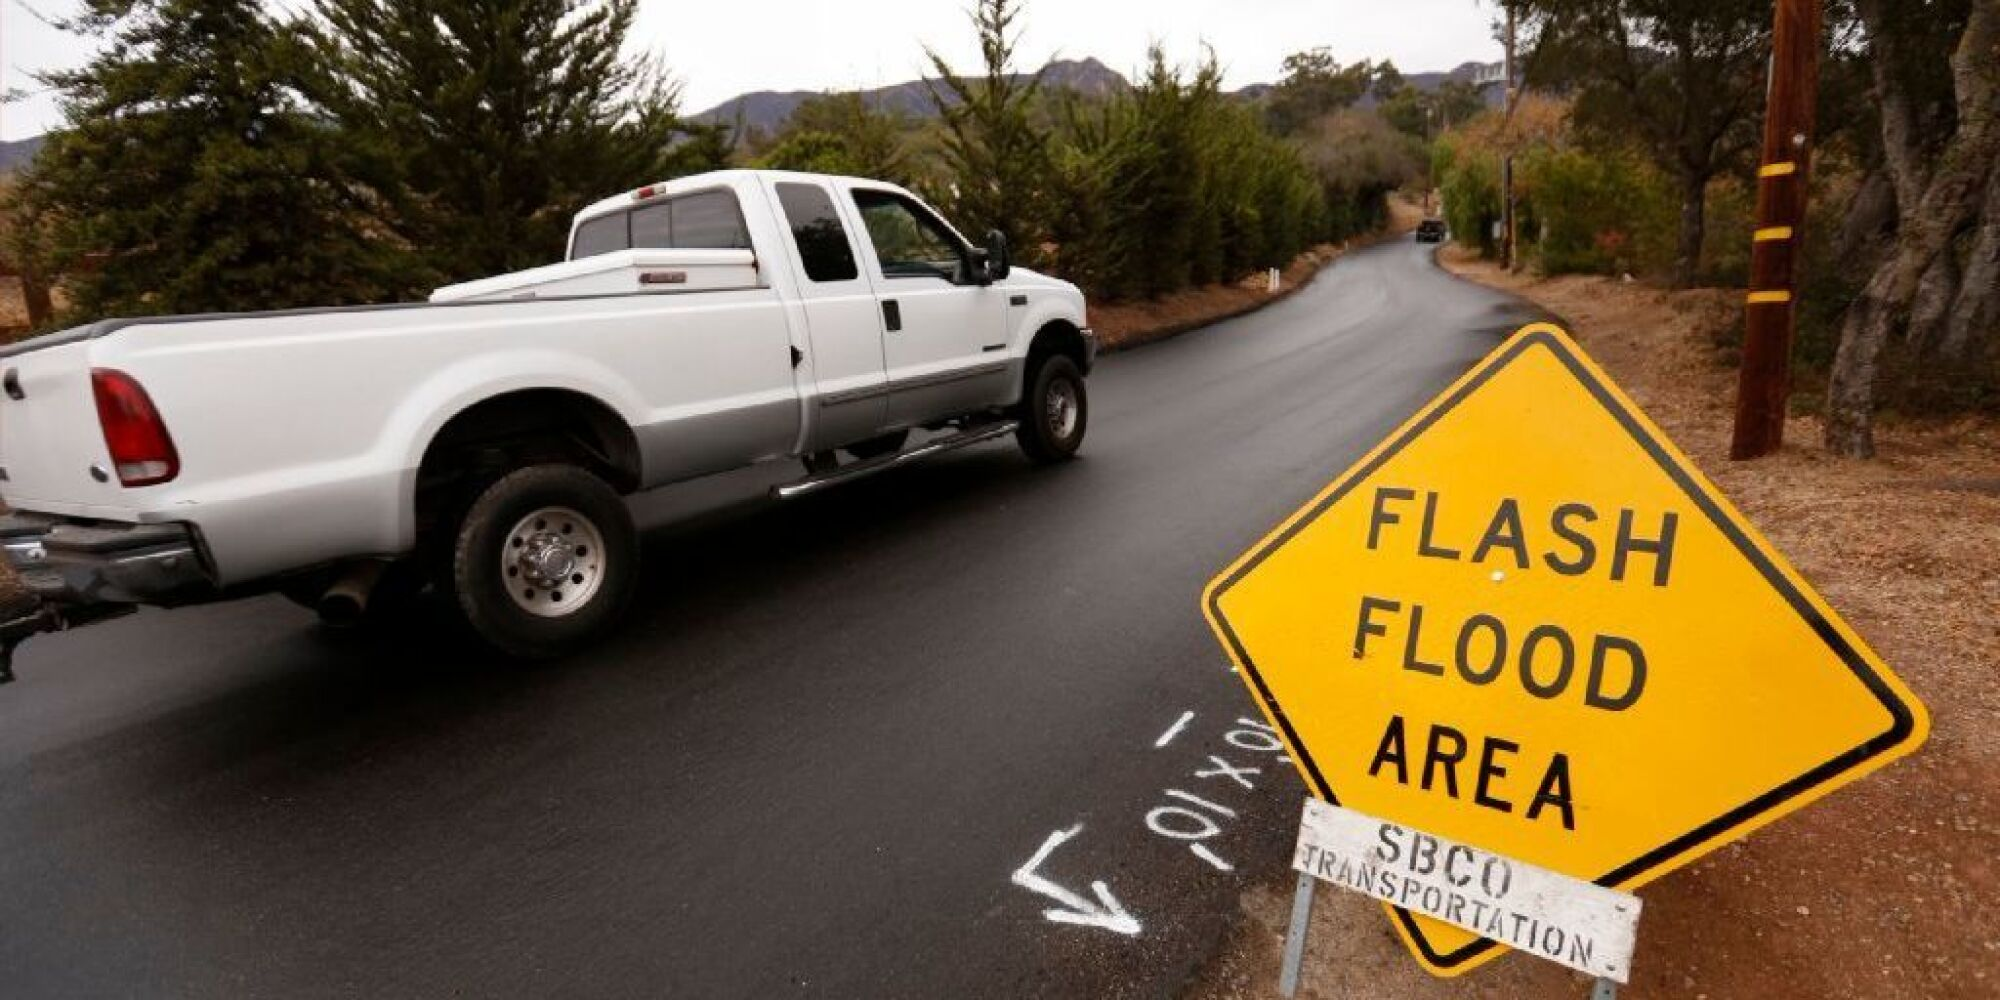 Southern California storm: Death toll in Montecito mudslide rises to 19, while 101 Freeway will remain closed indefinitely